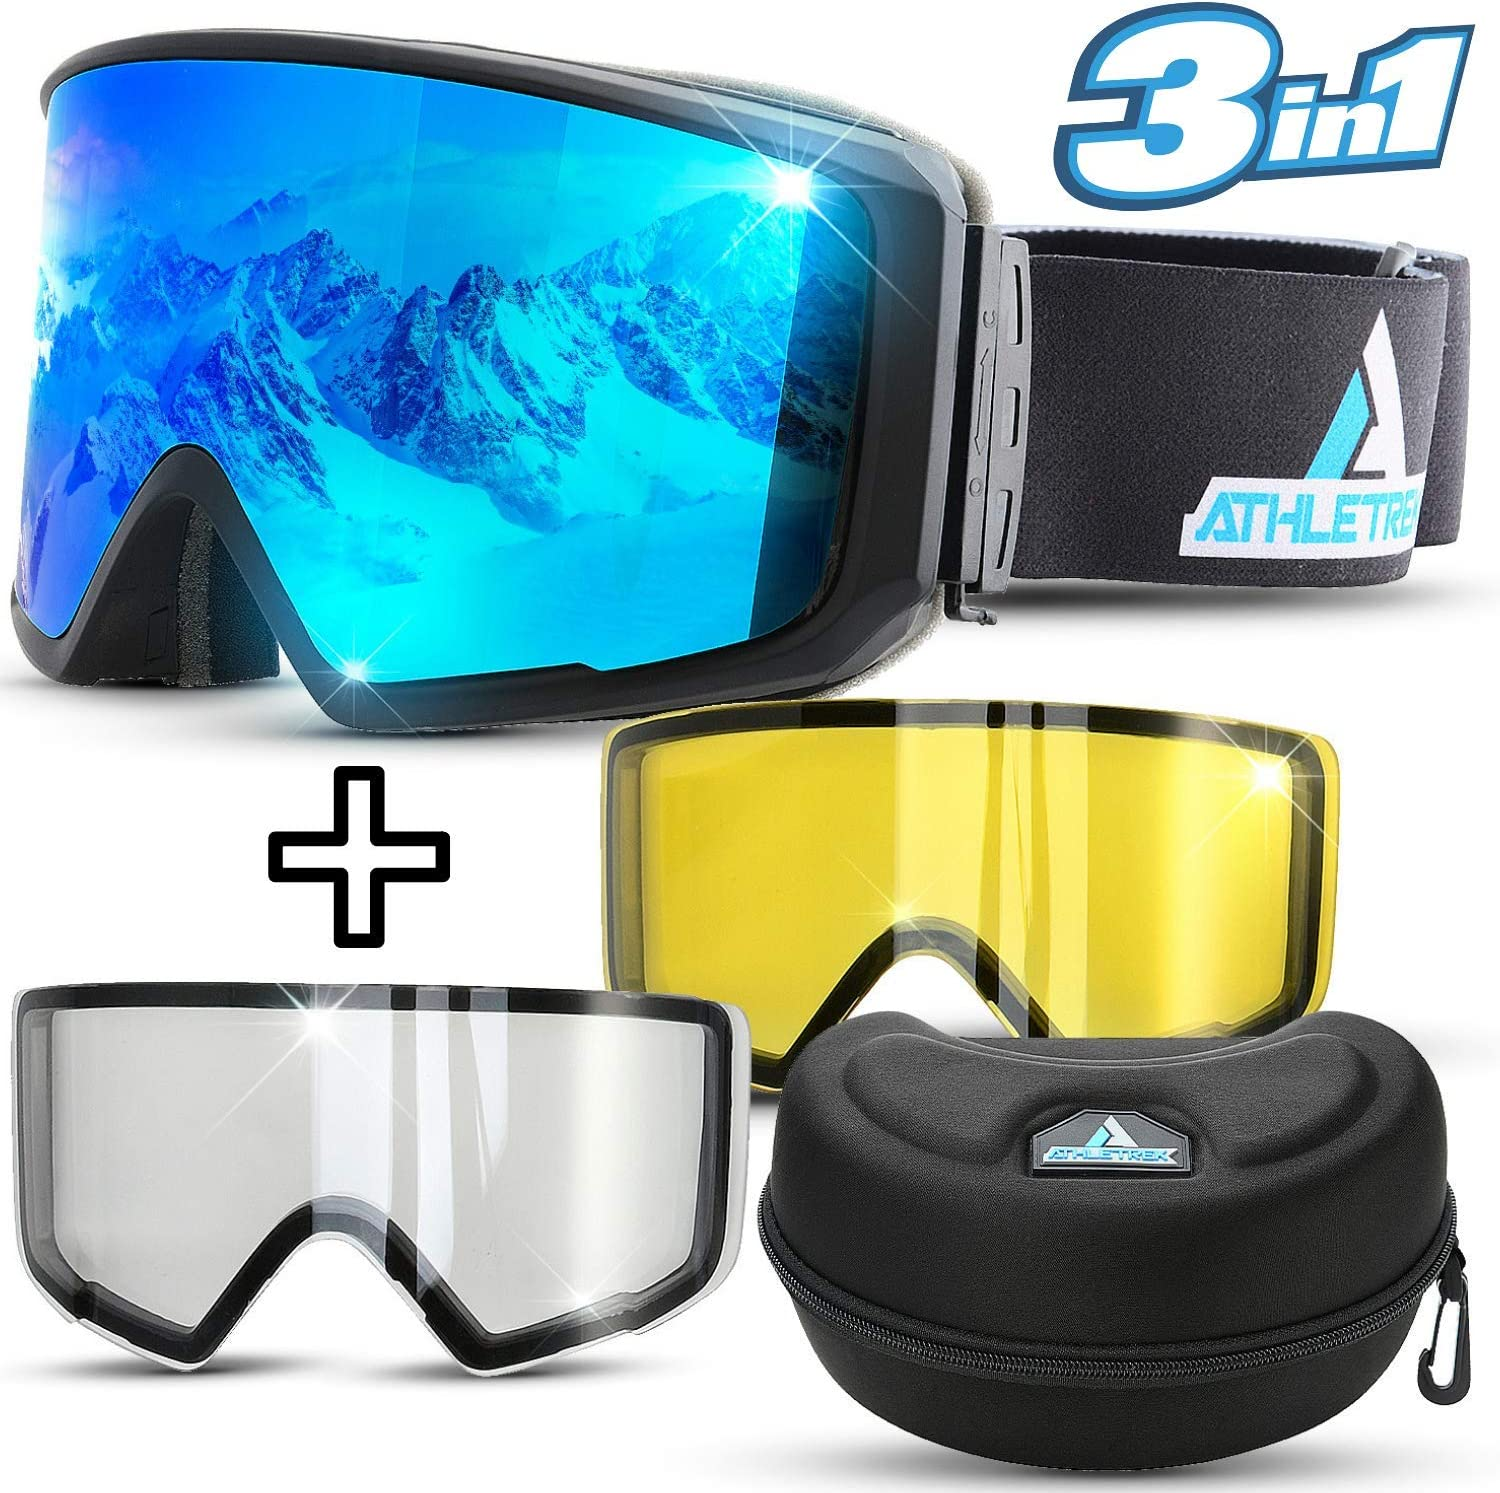 Athletrek Ski Snowboard Goggles 3 Unique Magnetic Fast Changing Lenses for All Weather Conditions UV400 Protection OTG Wide Vision Spherical Anti-Fog Dual Lens Anti-Slip Strap Adult Youth